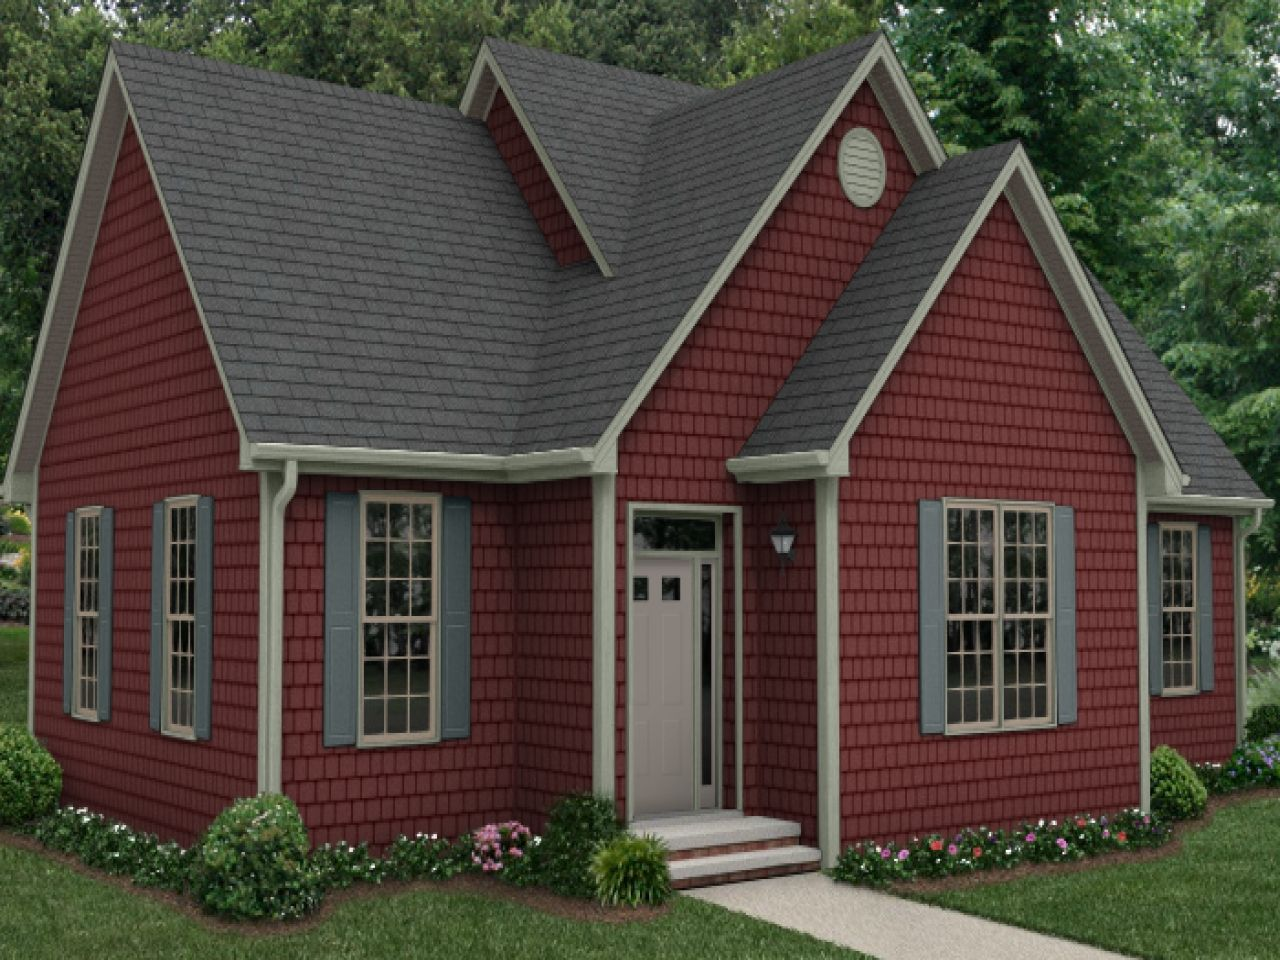 Love Roof Amp Shutters Color With The Red Siding House